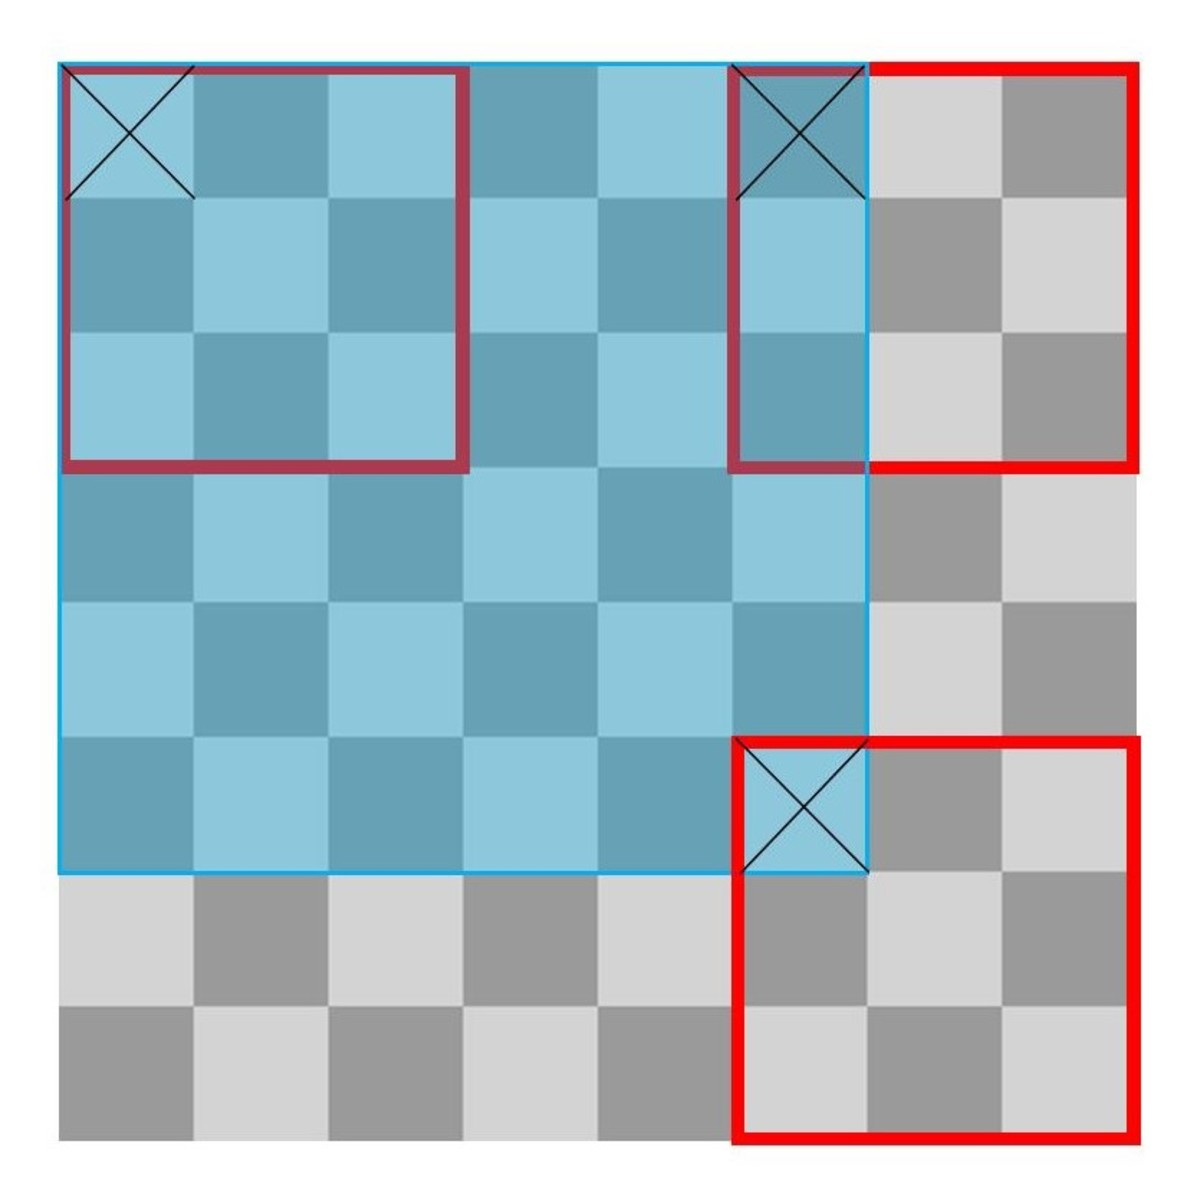 A Chessboard With 3x3 Squares